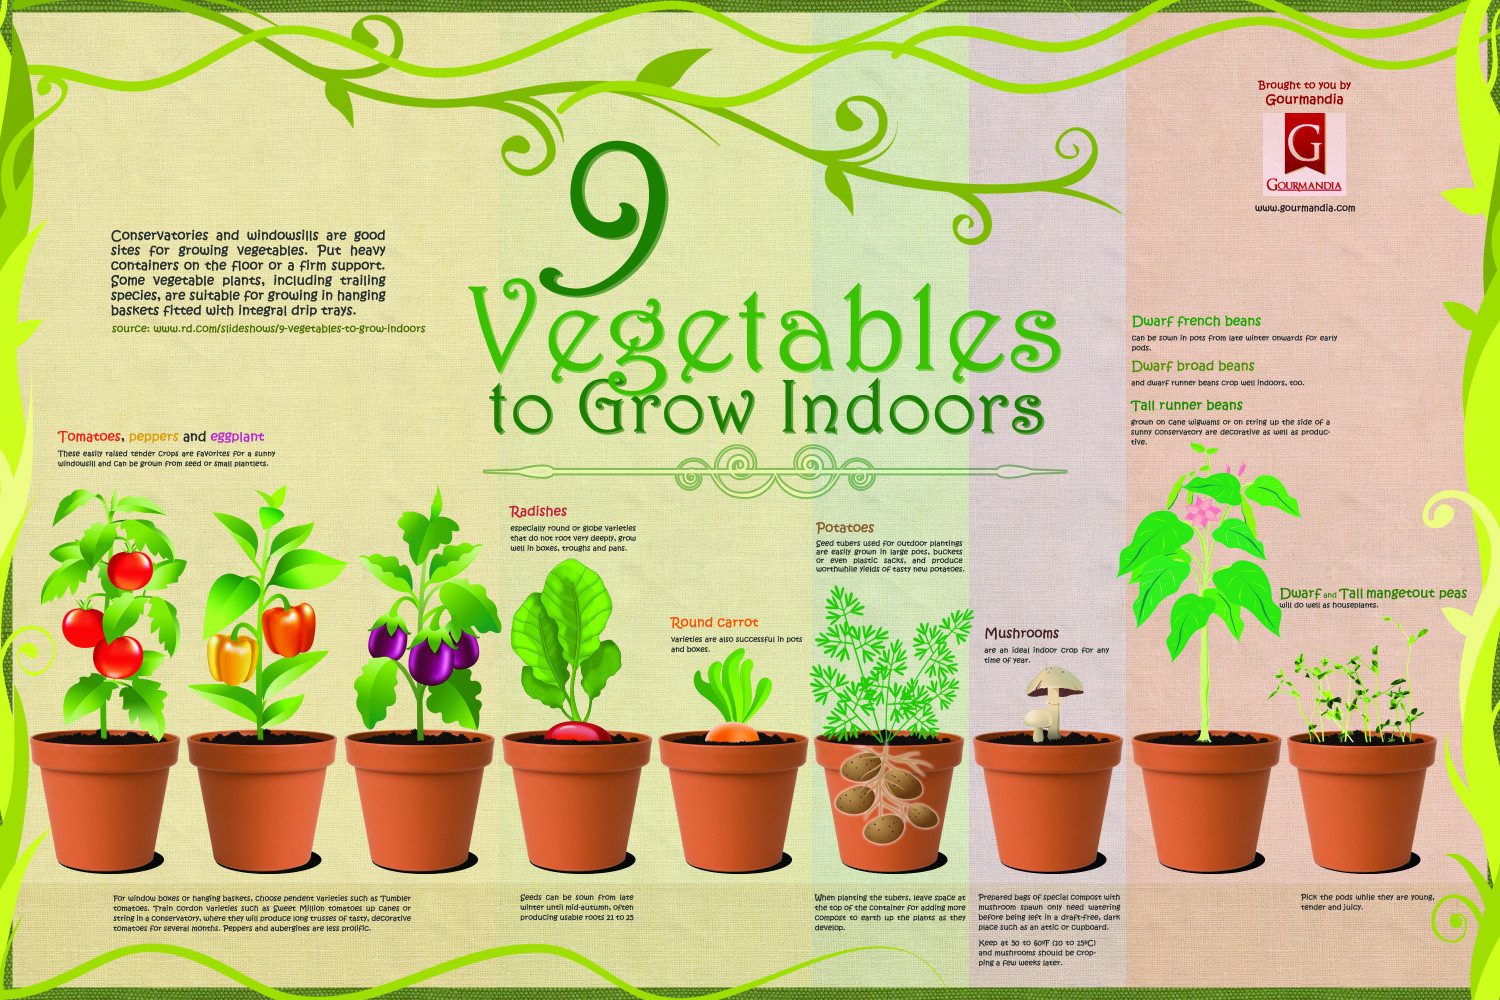 9 vegetables to grow indoors - Growing vegetables indoors practical tips ...